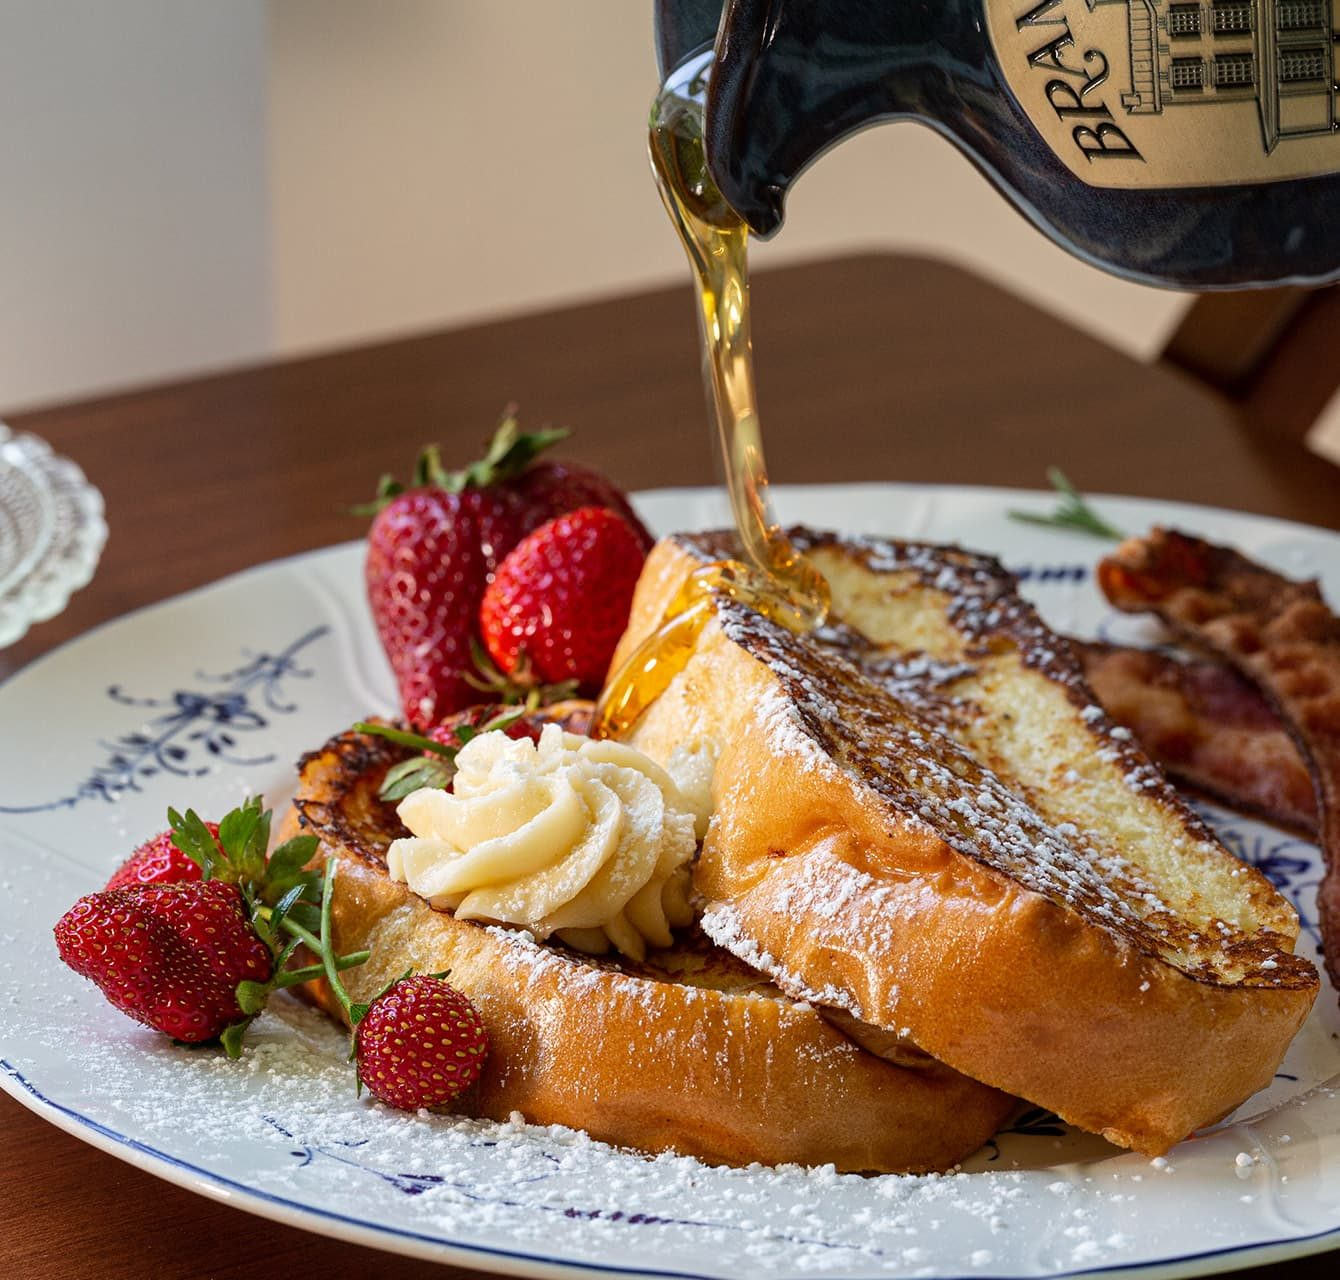 French toast and strawberries for breakfast